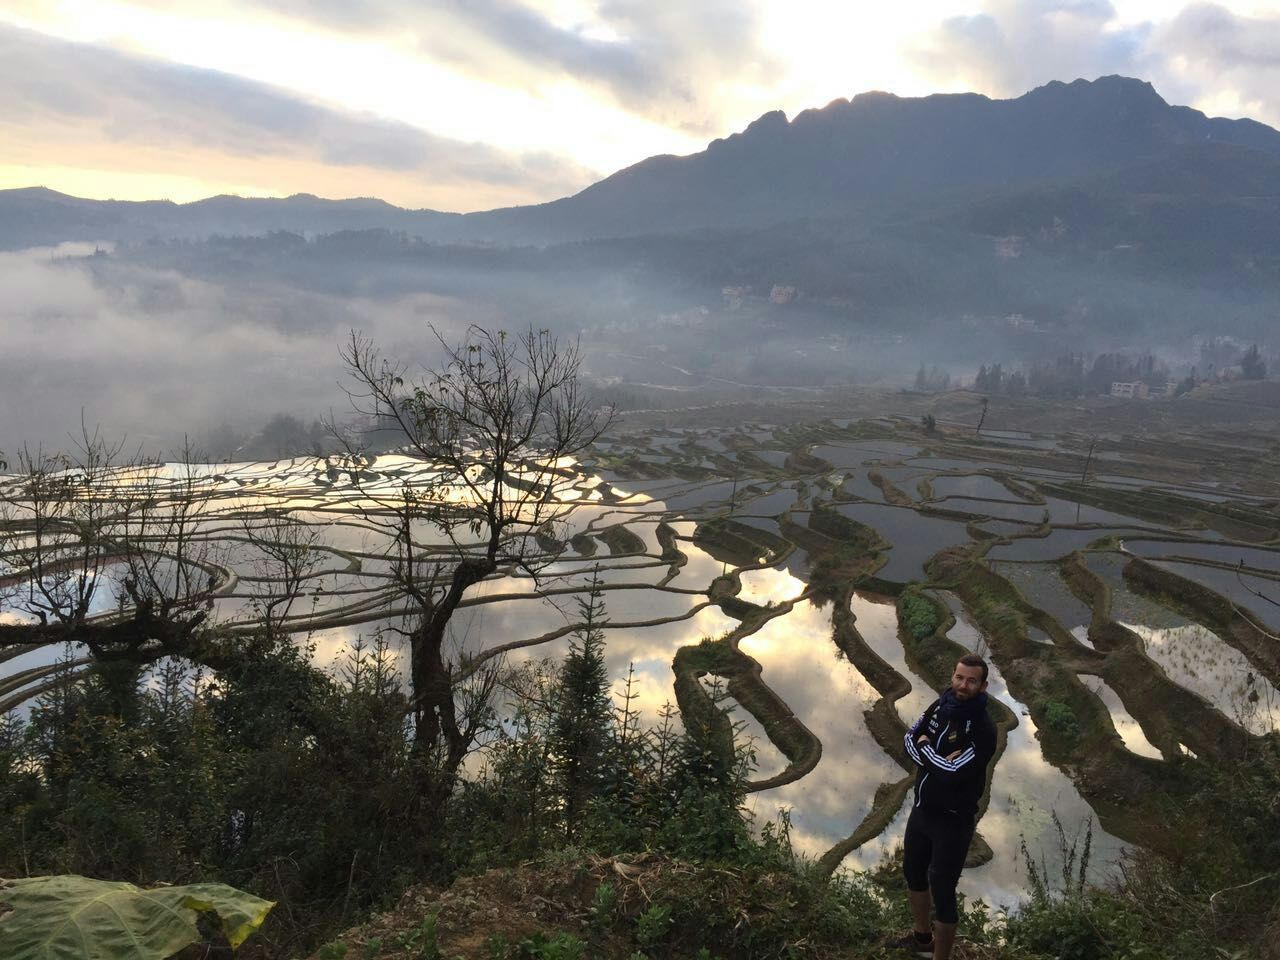 mmexport1485740571304 - Cycling trip through Yunnan: China's countryside